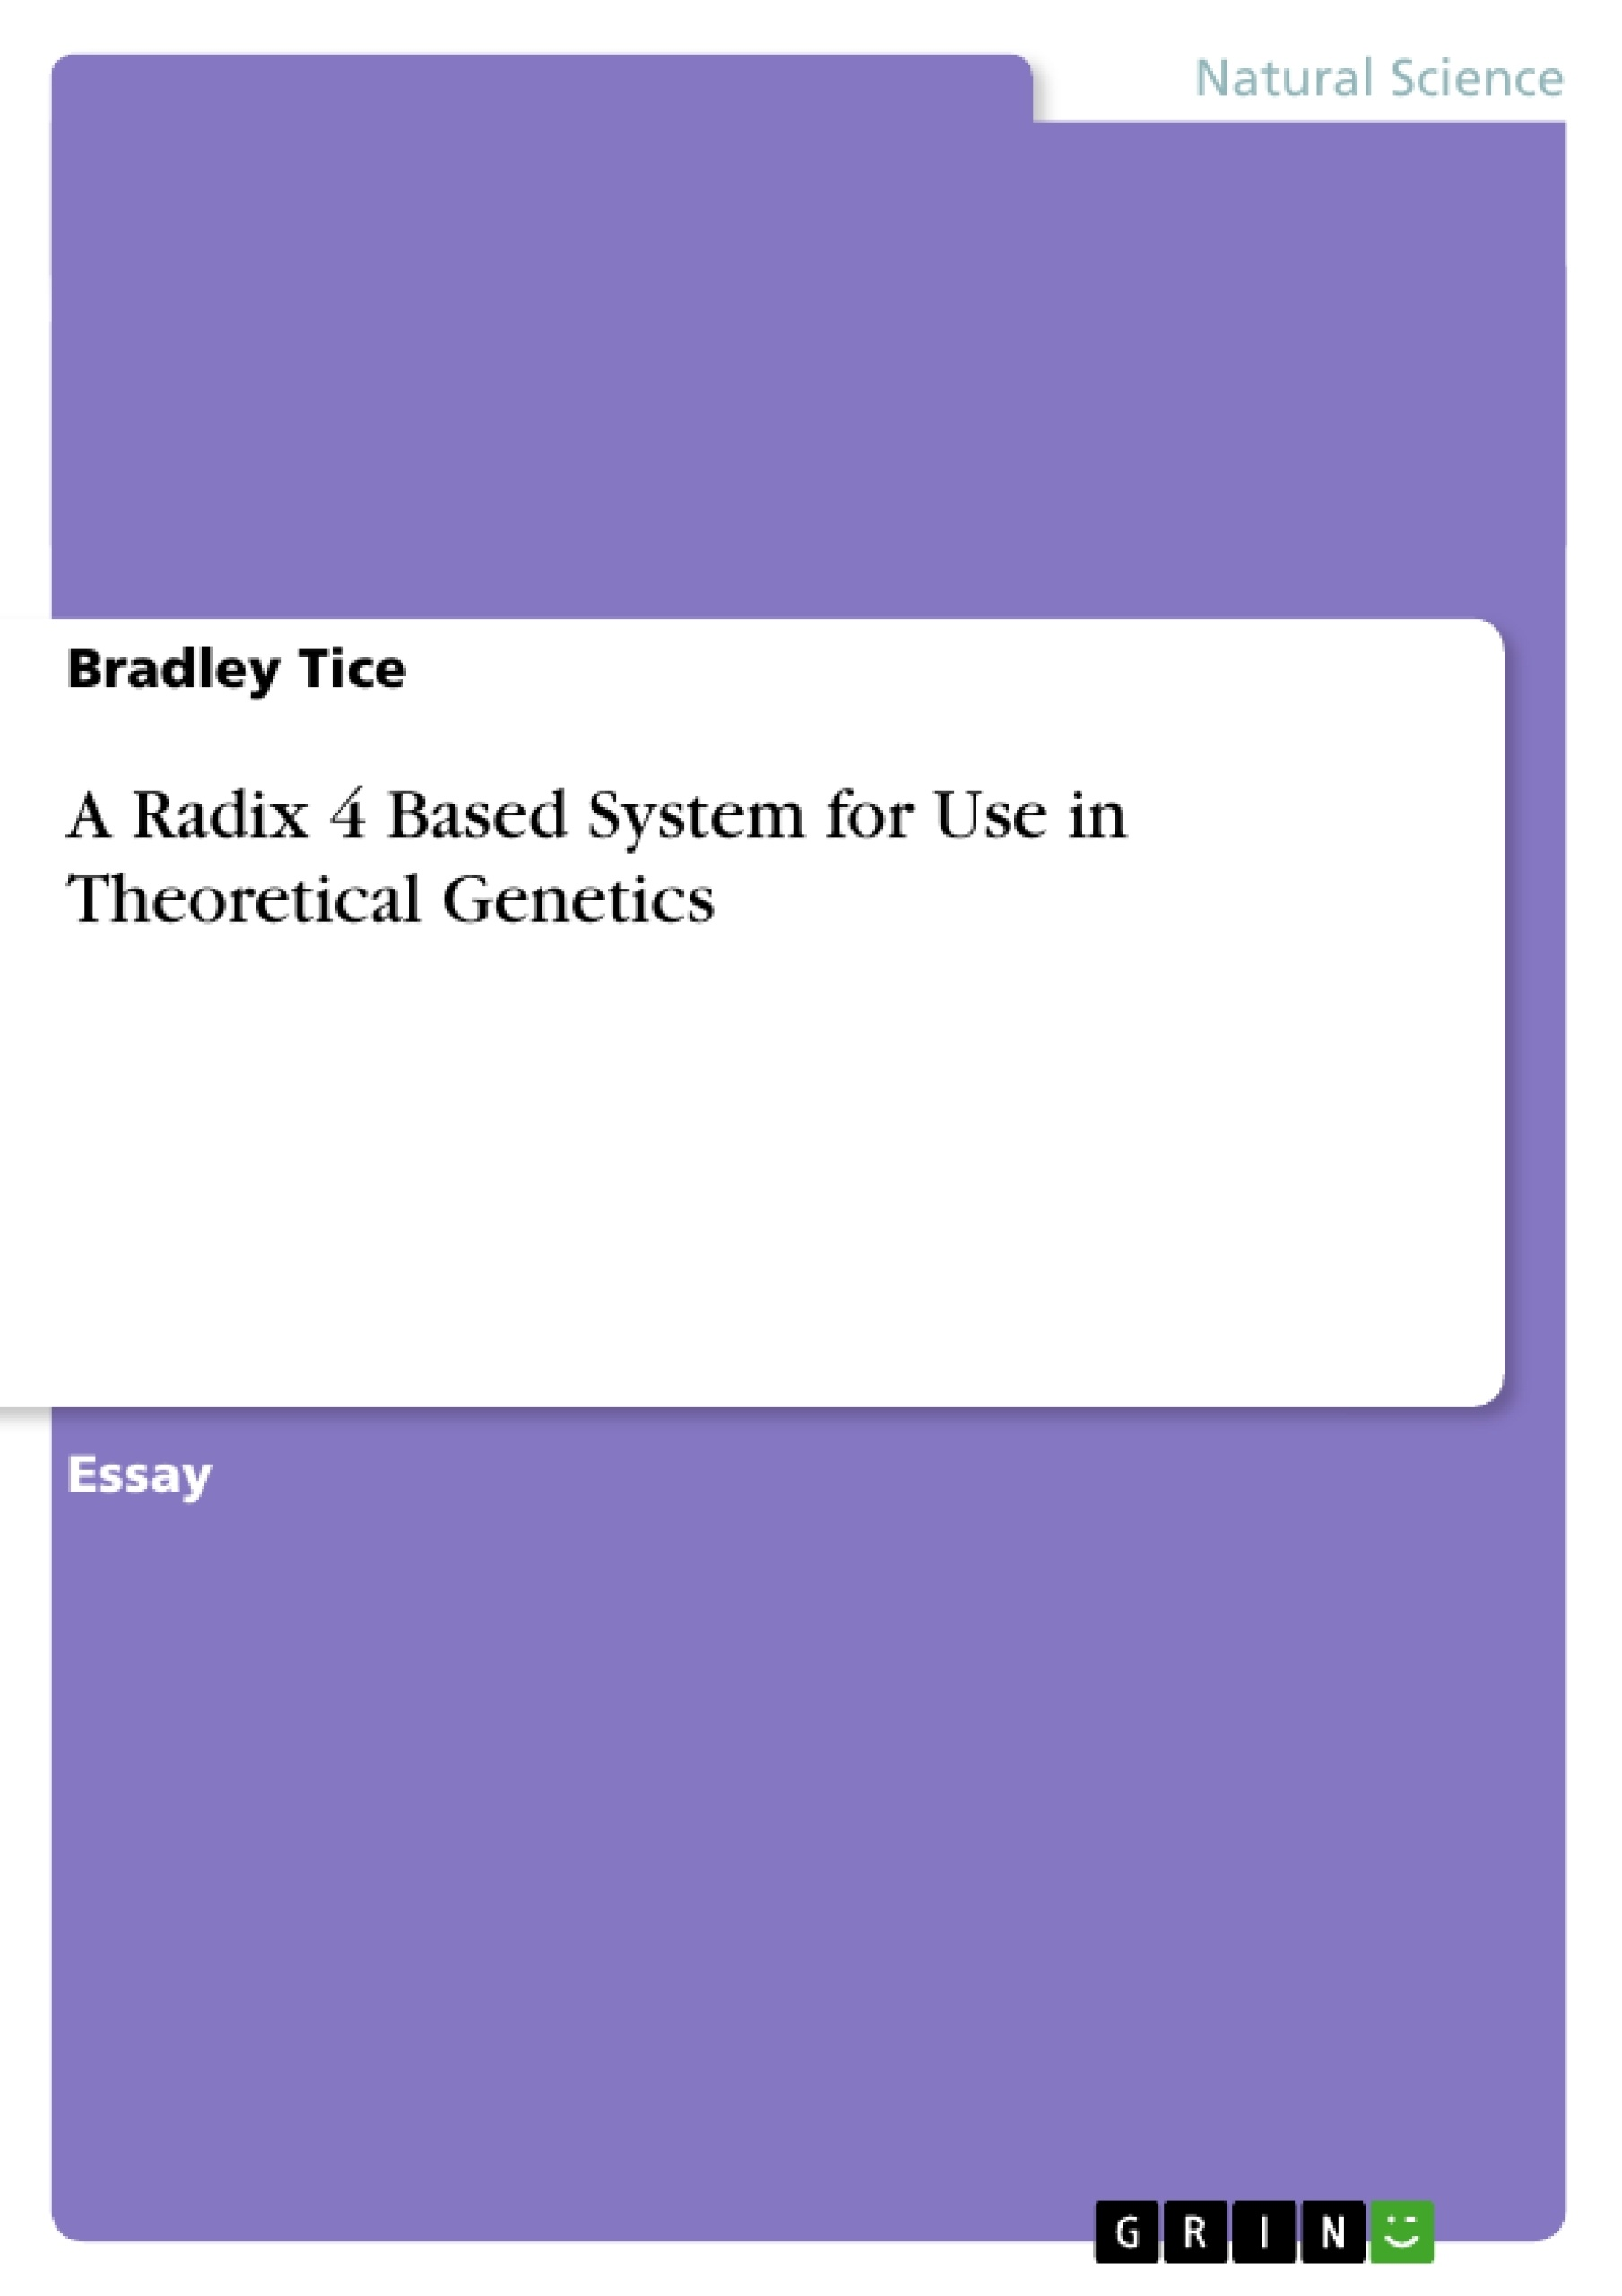 Title: A Radix 4 Based System for Use in Theoretical Genetics